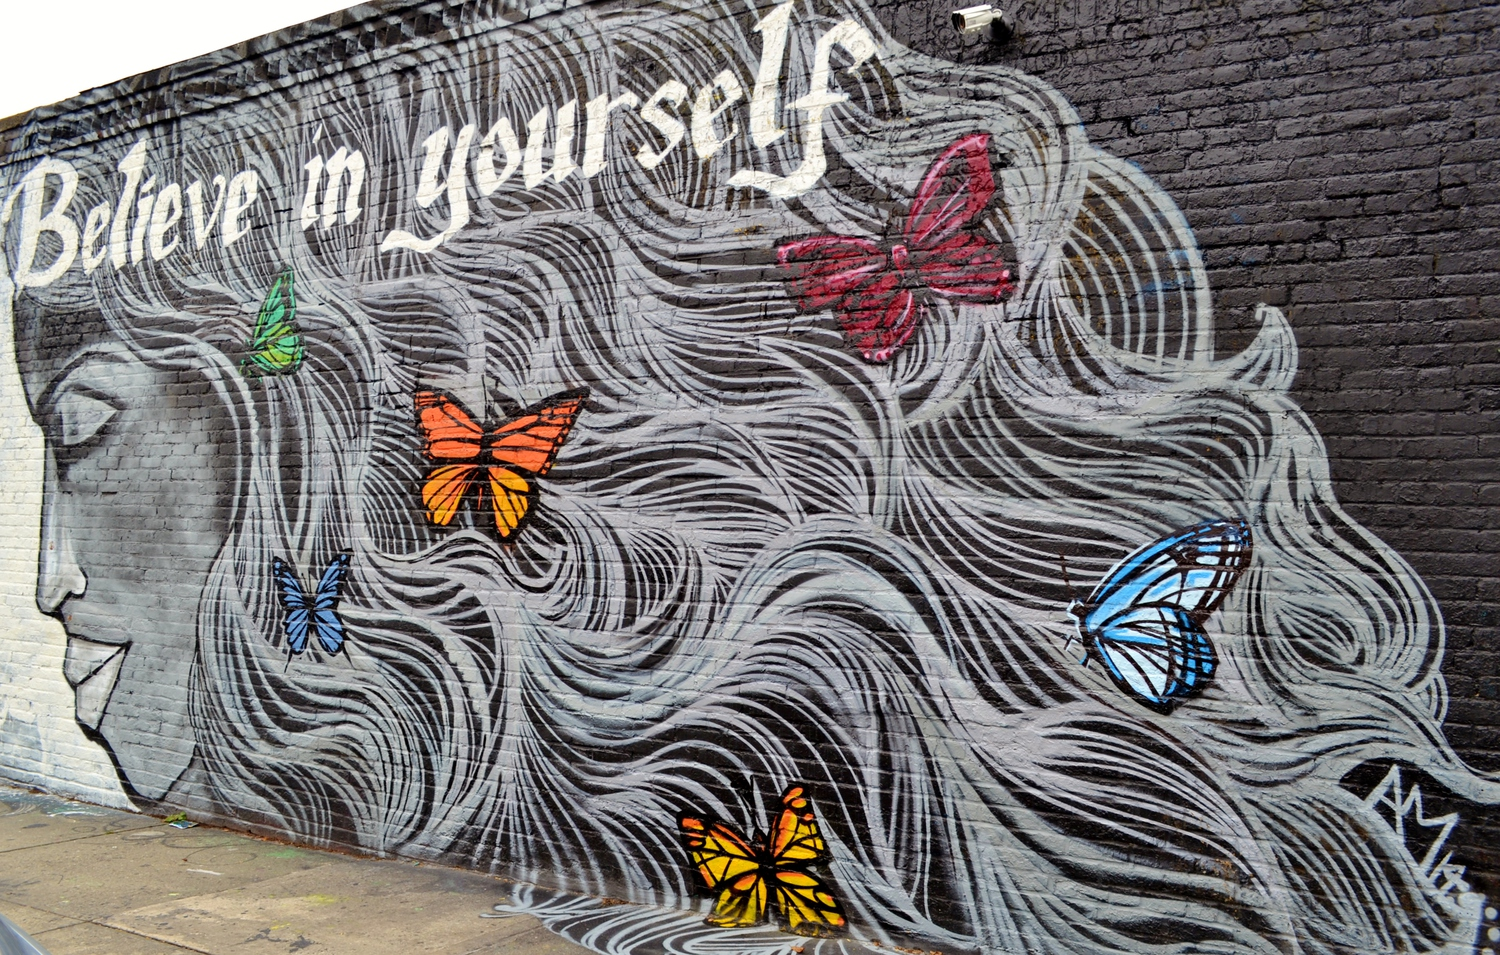 Welling Court: Alice Mizrachi, 9.21.14 | A visit to the Welling Court Mural Project in Queens on 9.21.14. With 5 Pointz gone, Welling Court has become the new graffiti center in the borough. I'll try to include the individual artists, great talent/ work from everyone.